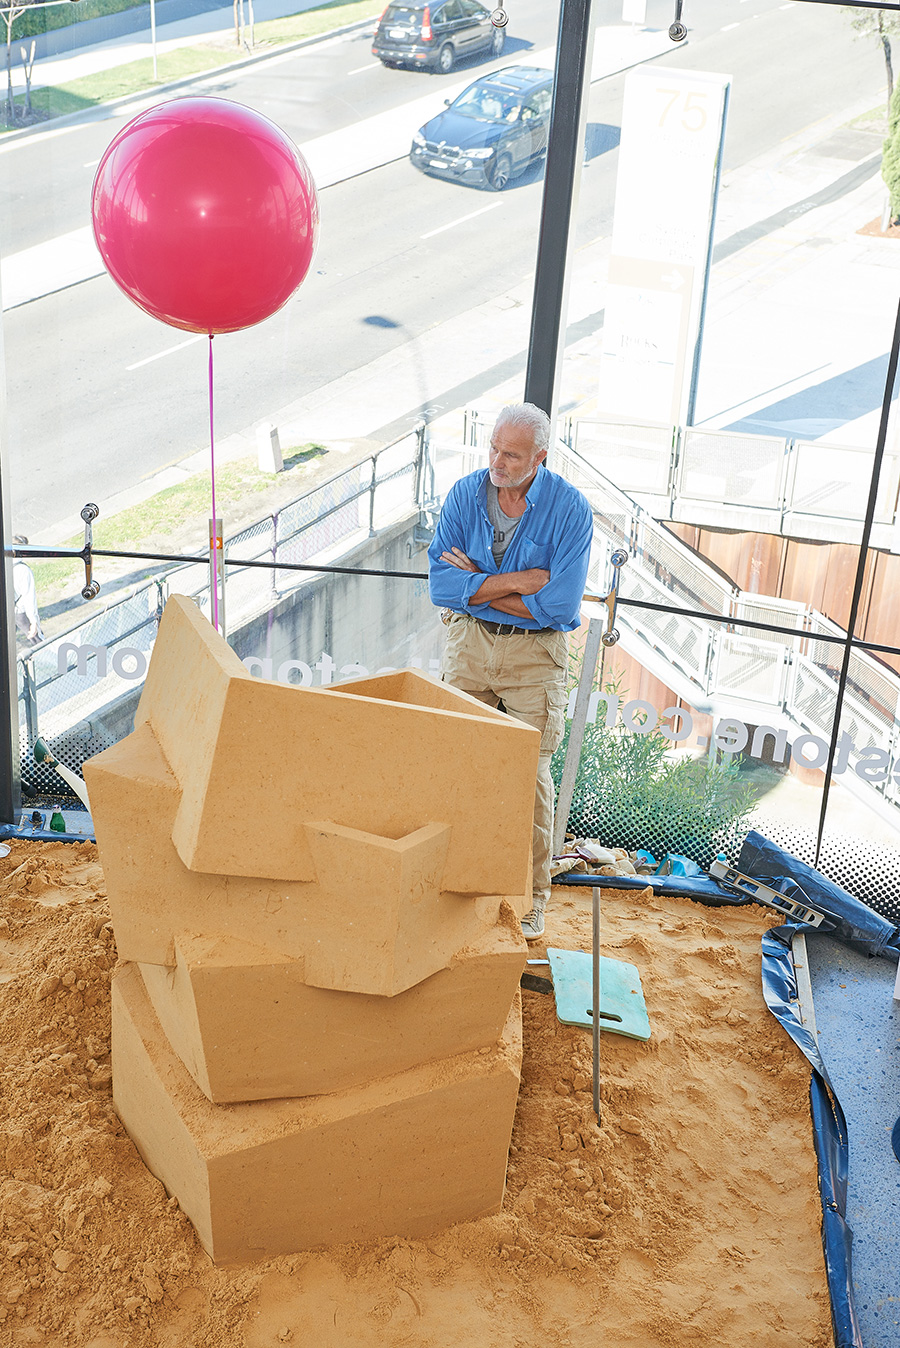 Spain's most renowned surface producer, COSENTINO, recreated their beautiful Daniel Libeskind-designed sculpture, Beyond The Wall, using 5 tonnes of sand in their showroom space. You can look, but you can't touch! Photo: Fiona Susanto, courtesy Indesign Media.